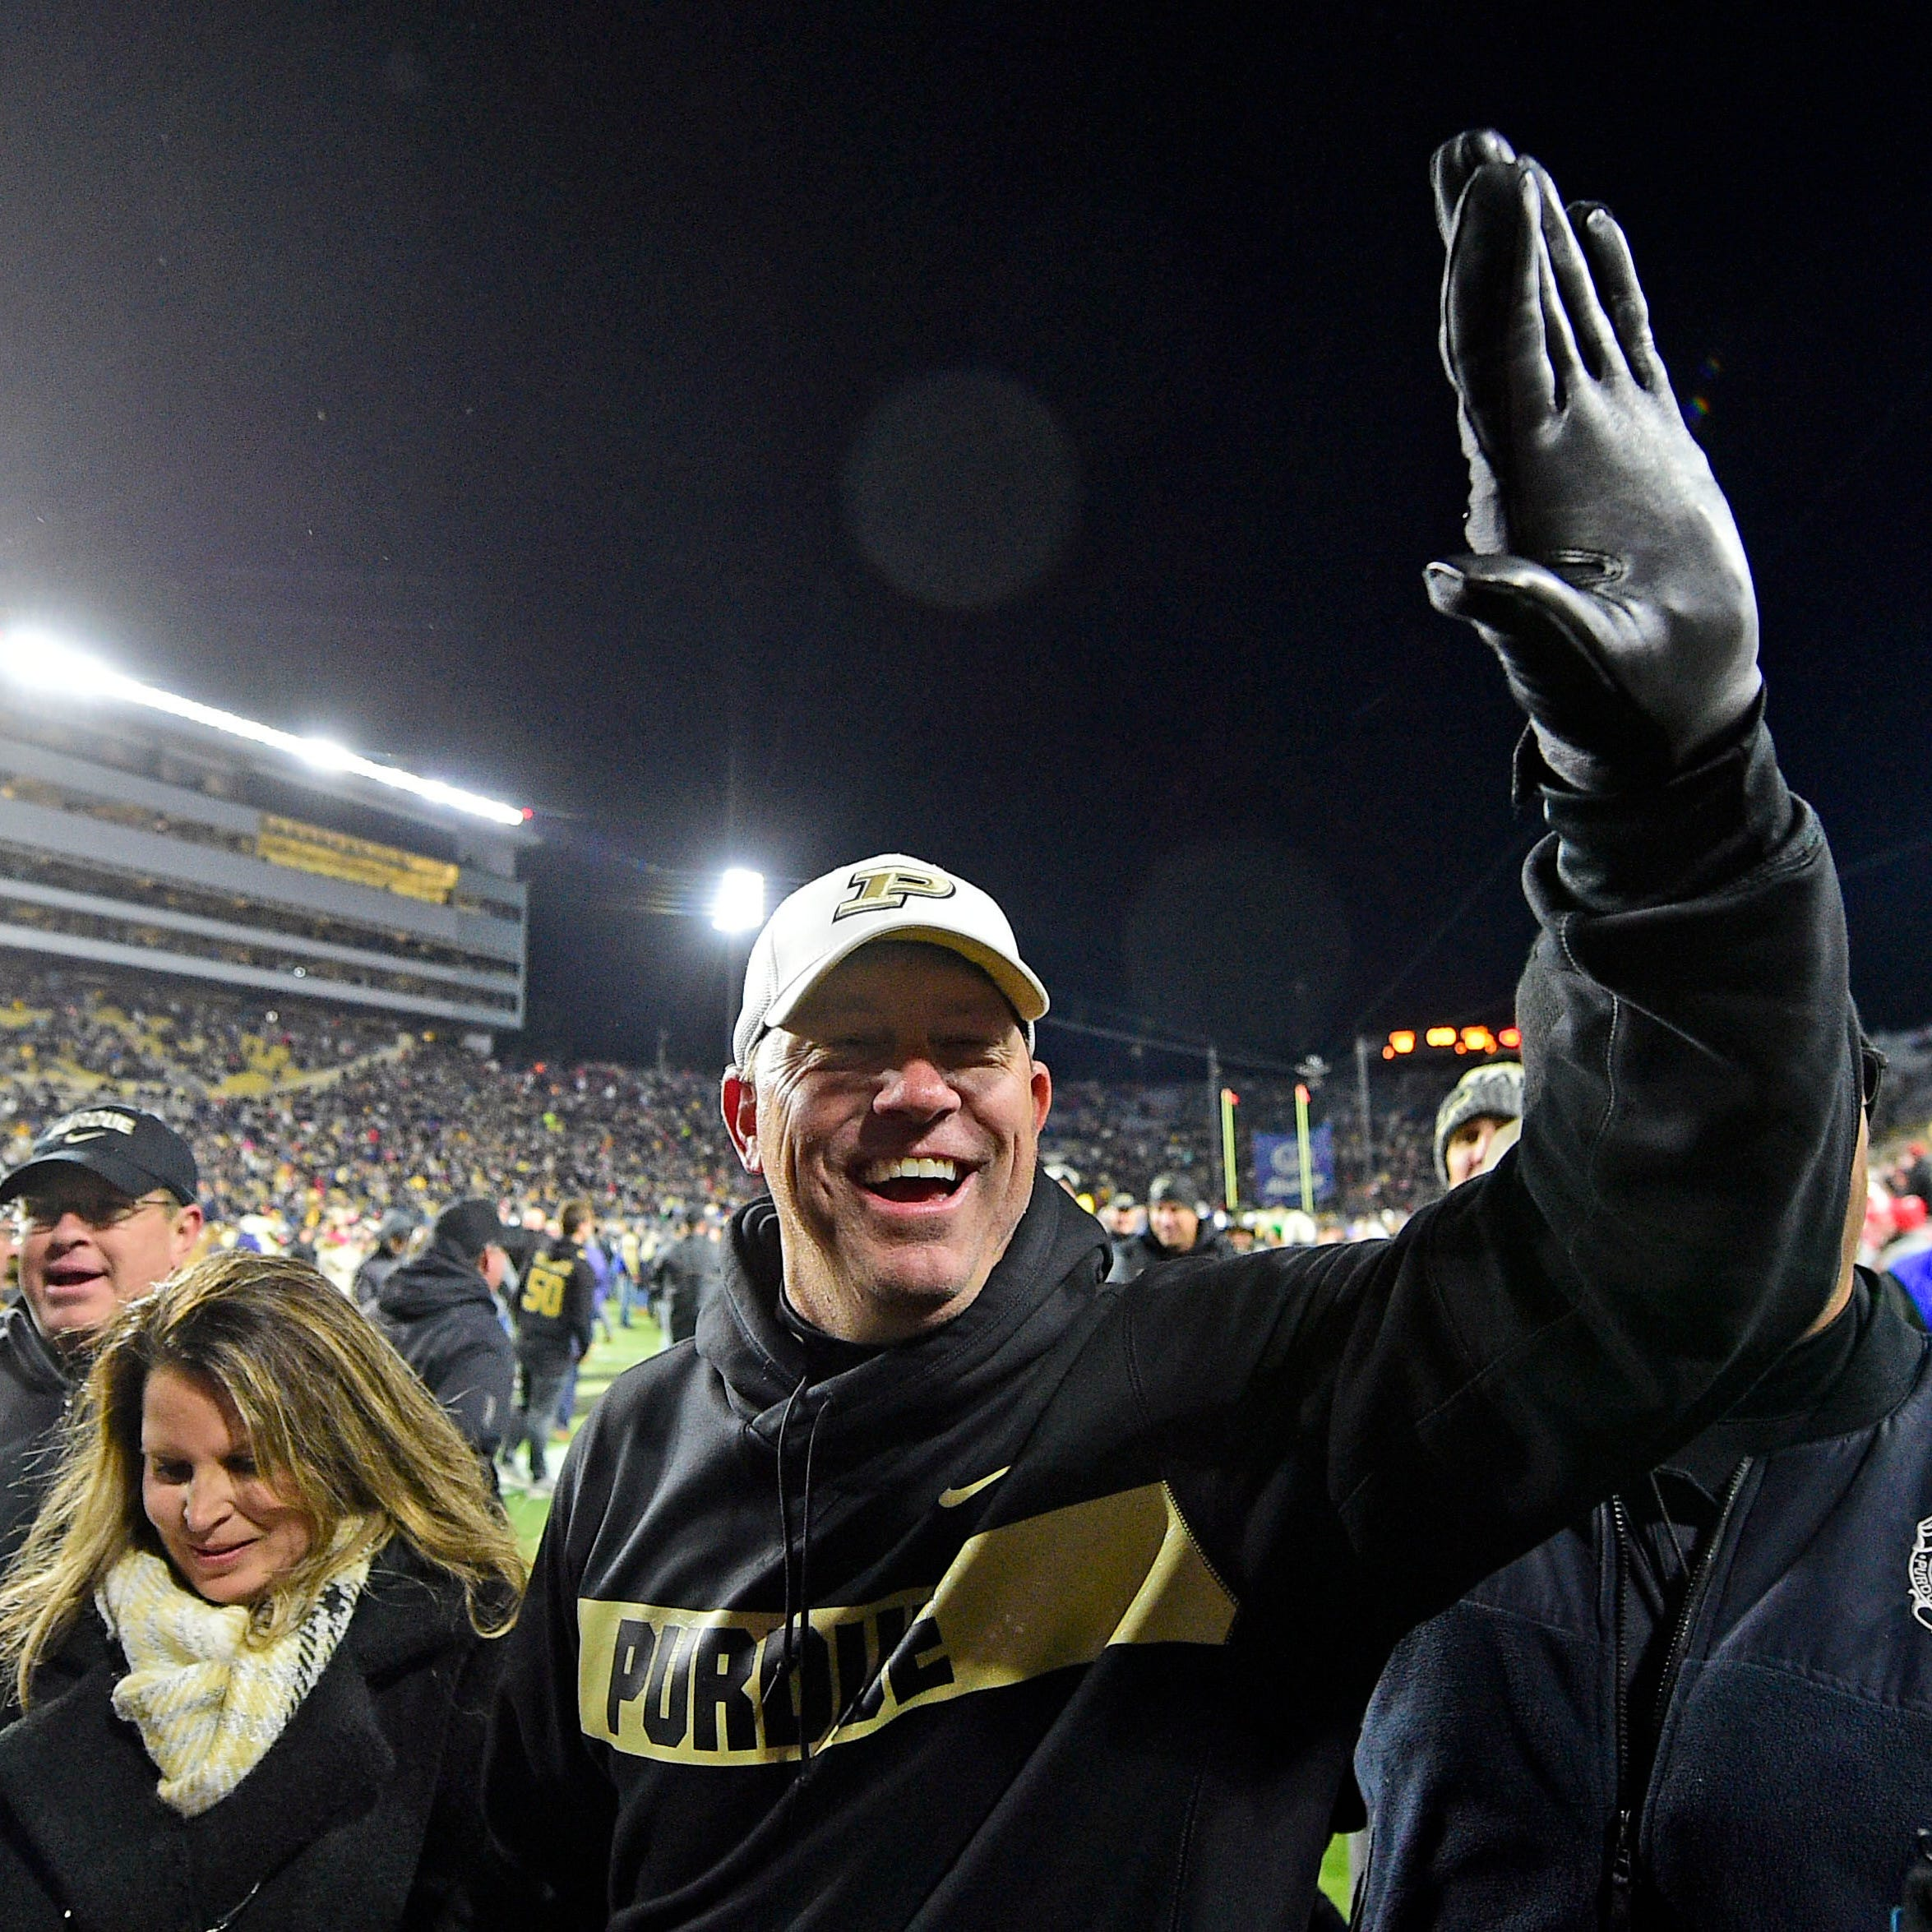 Purdue's big win increases the Jeff Brohm-to-Louisville chatter